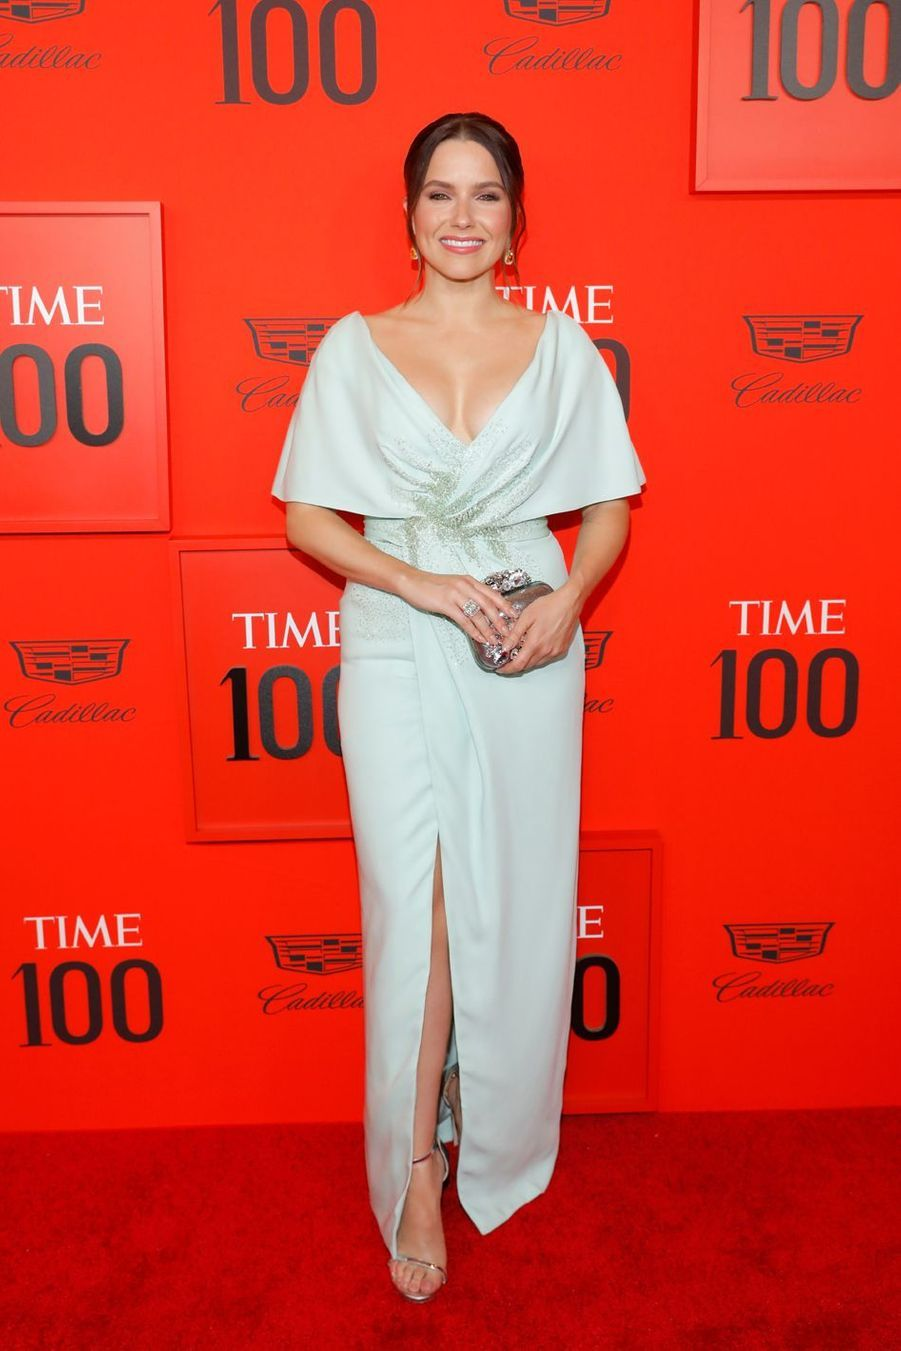 Sophia Bush au Time 100 Gala à New York le 23 avril 2019